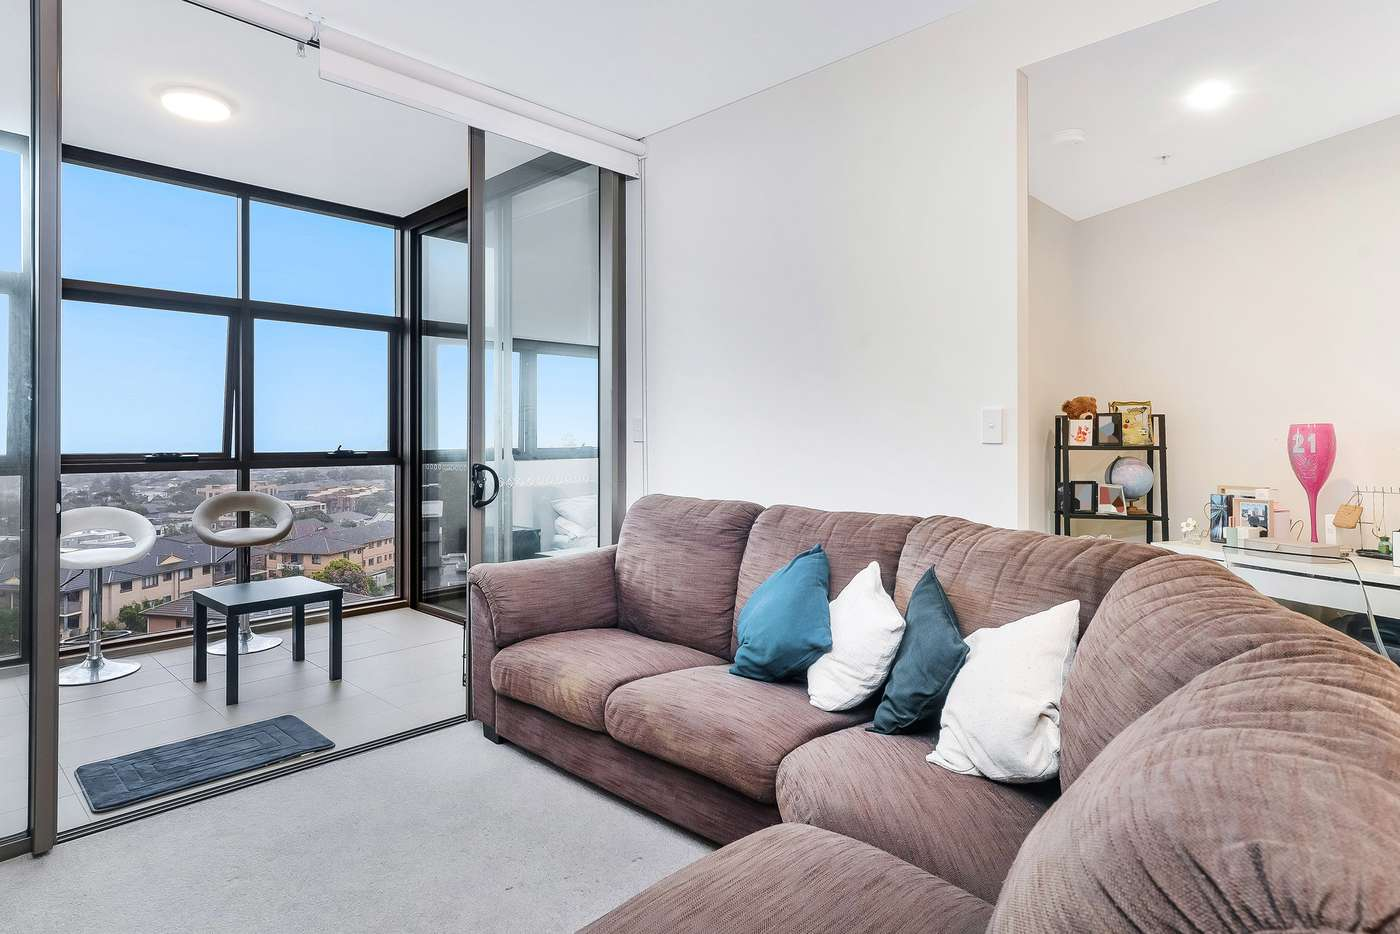 Main view of Homely apartment listing, 616/23-31 Treacy Street, Hurstville NSW 2220